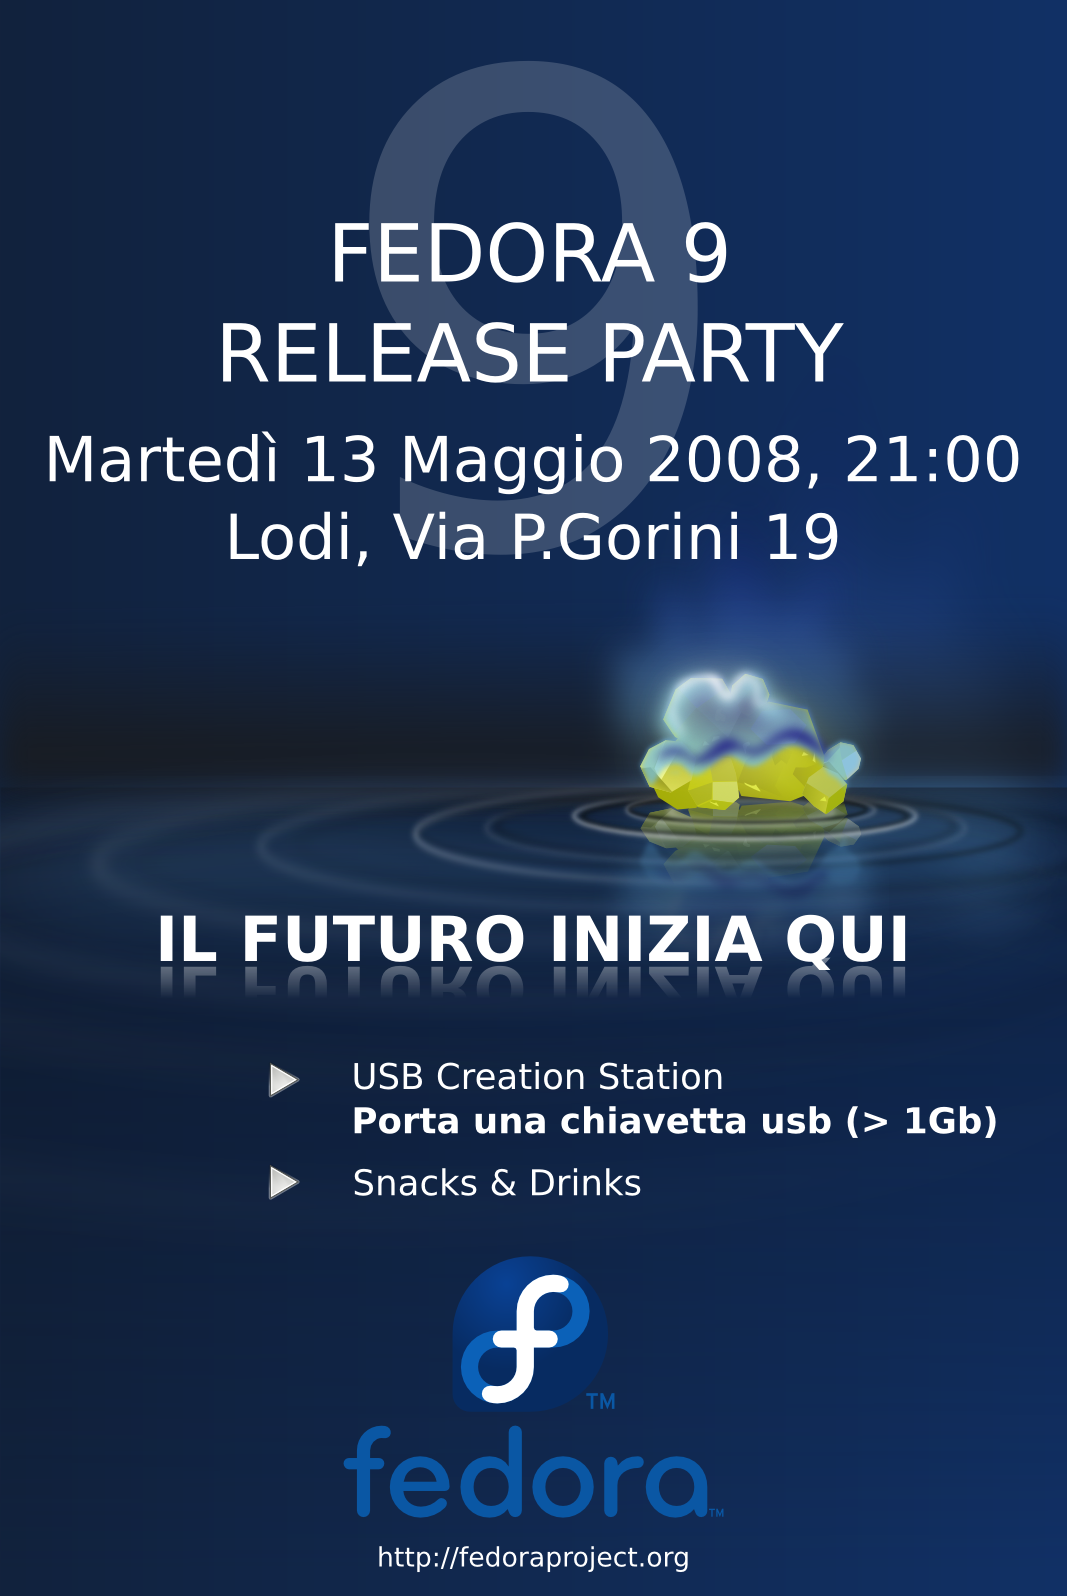 FedoraEvents ReleaseParty F9 Lodi F9RP Lodi it.png